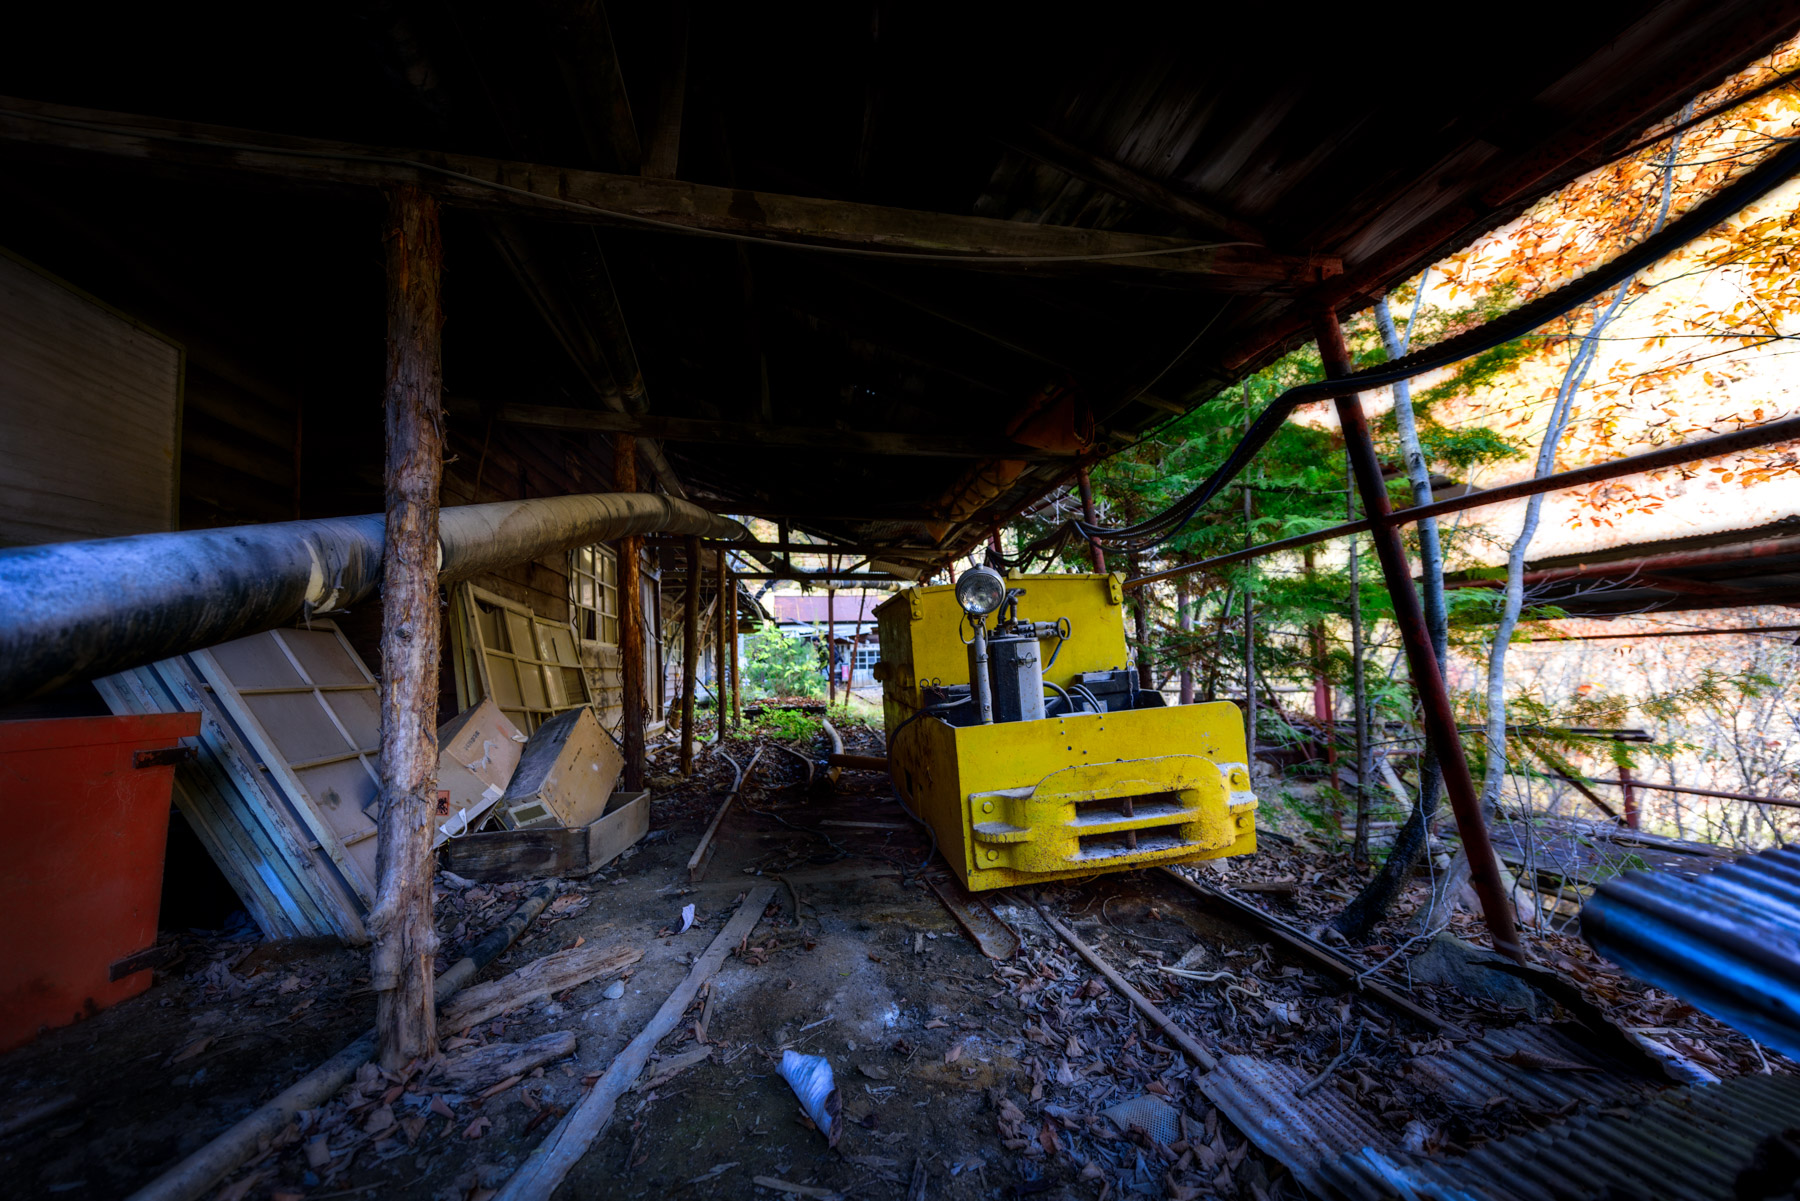 abandoned, chichibu, factory, haikyo, japan, japanese, kanto, mine, point-of-interest, ruin, saitama, urban exploration, urbex